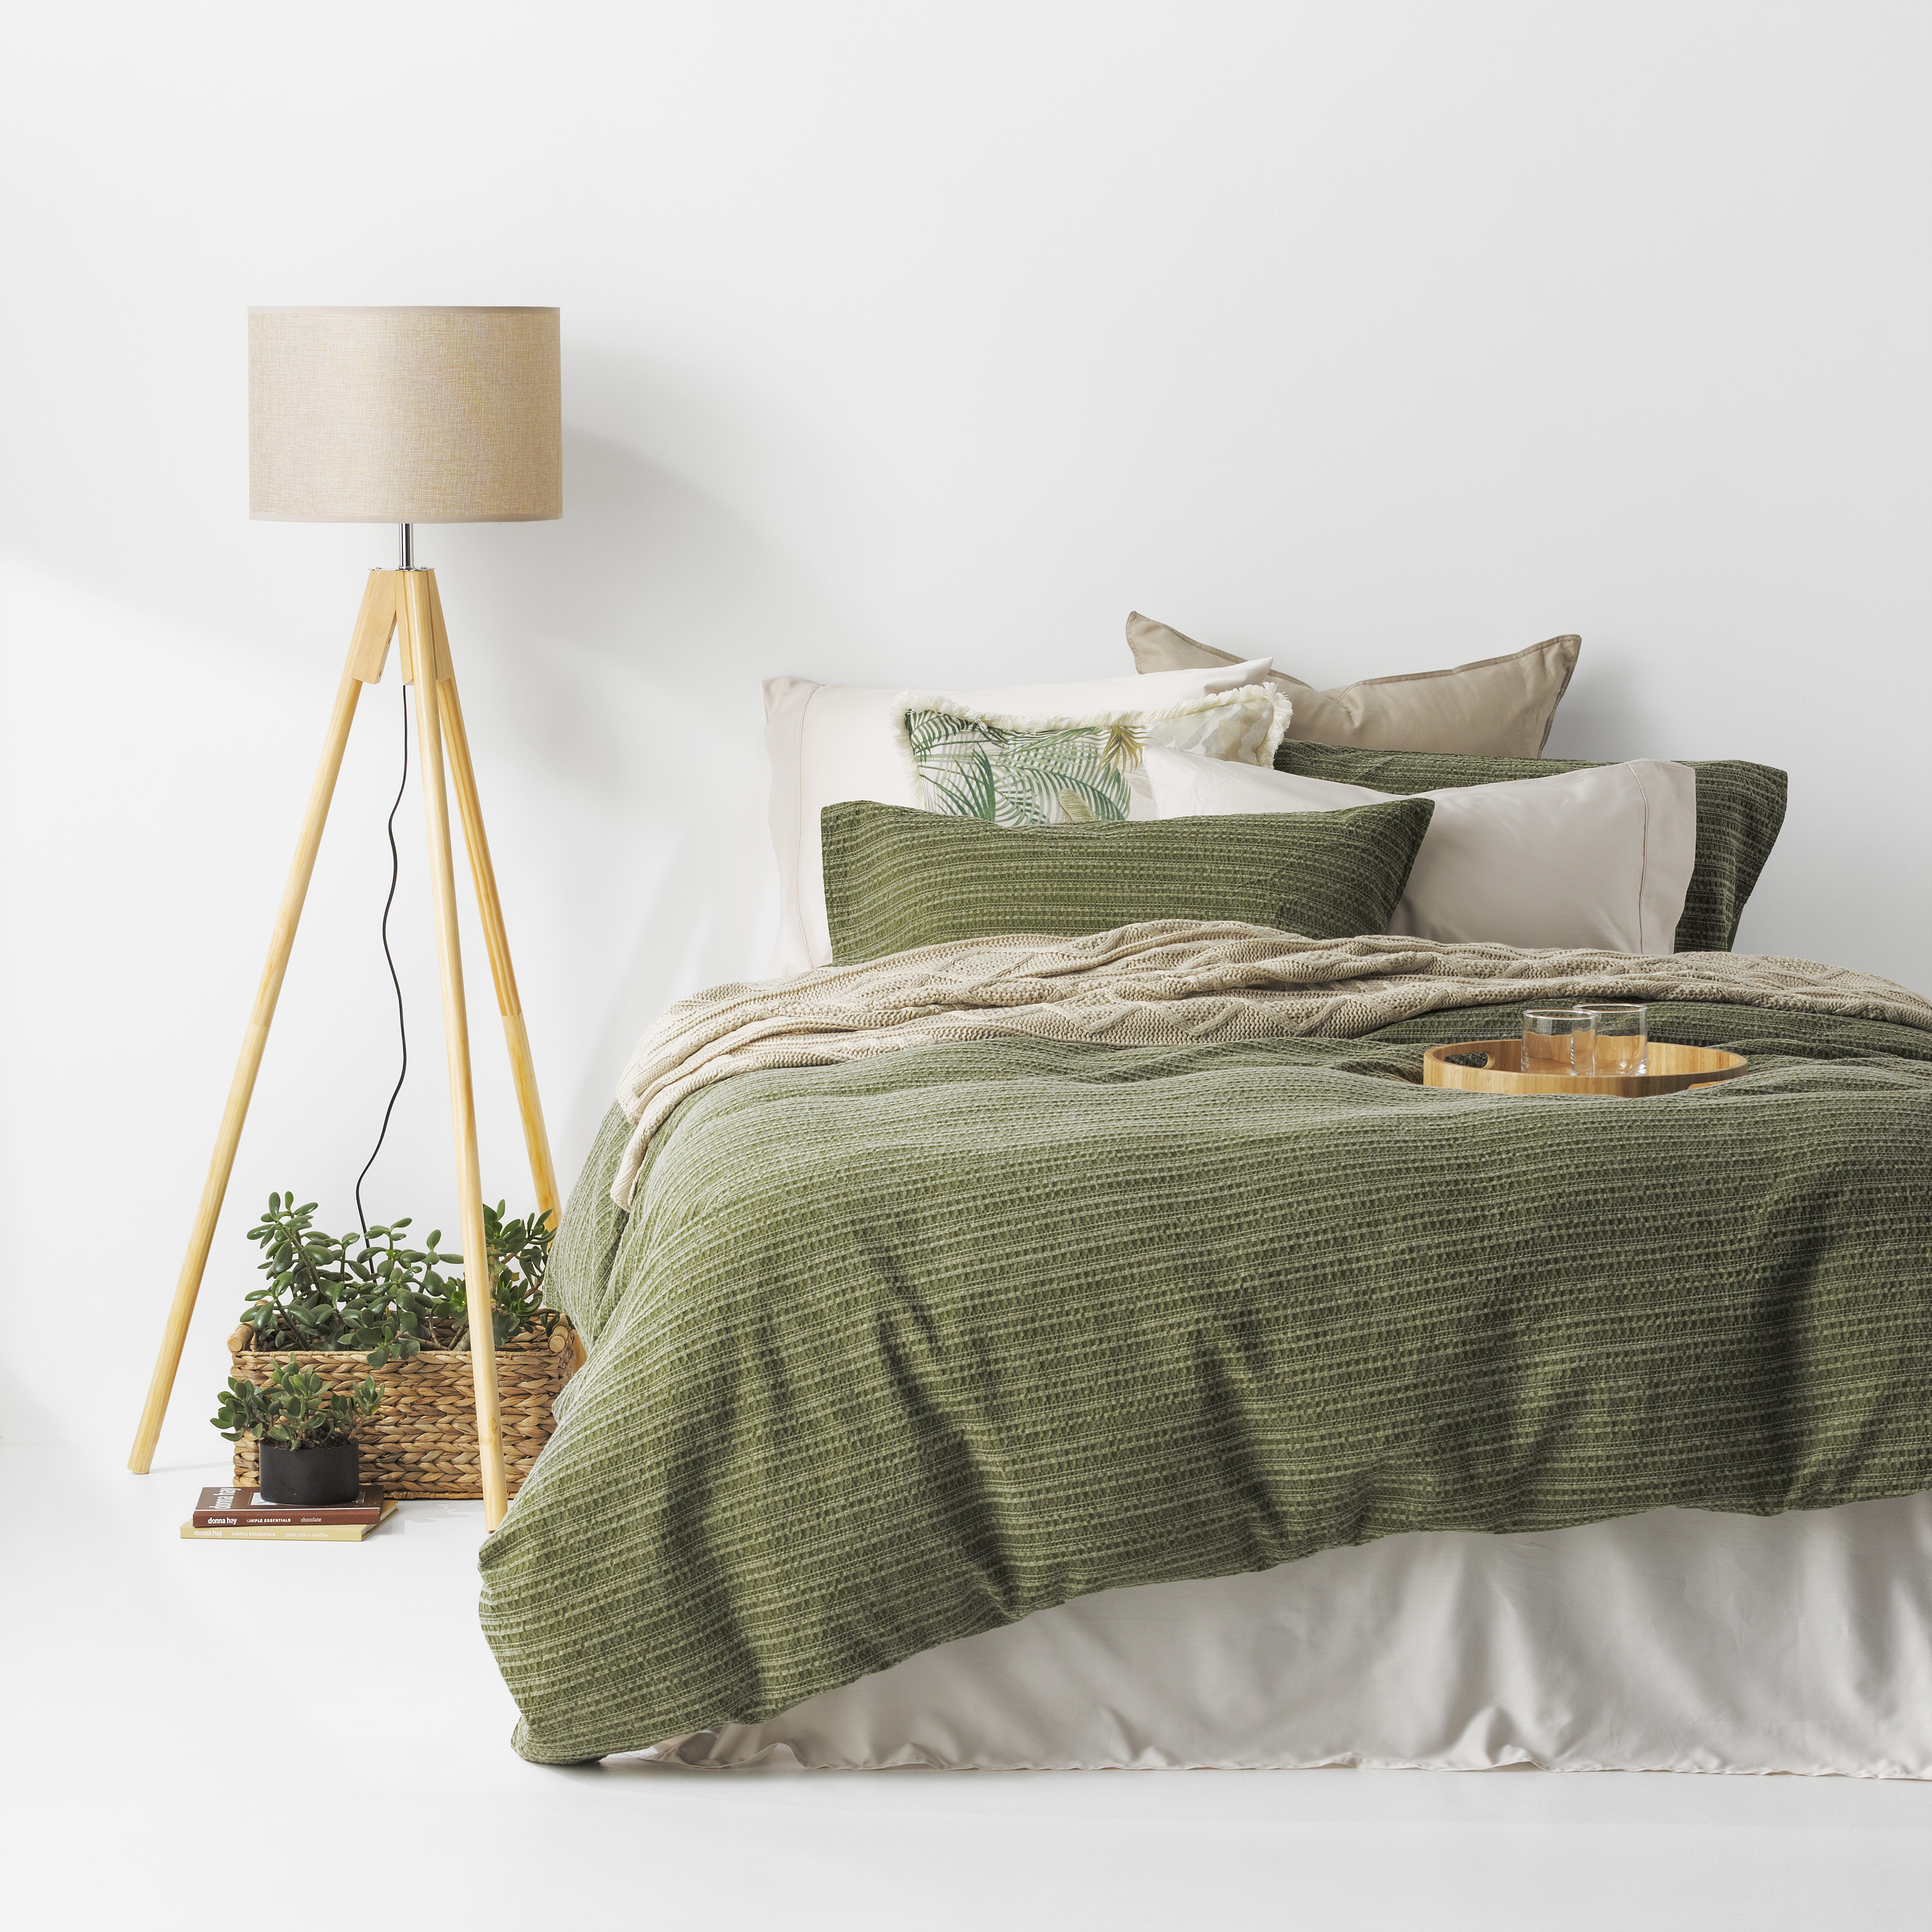 In2Linen Stone Washed Waffle Weave Pure Cotton Quilt Cover Set IGreen